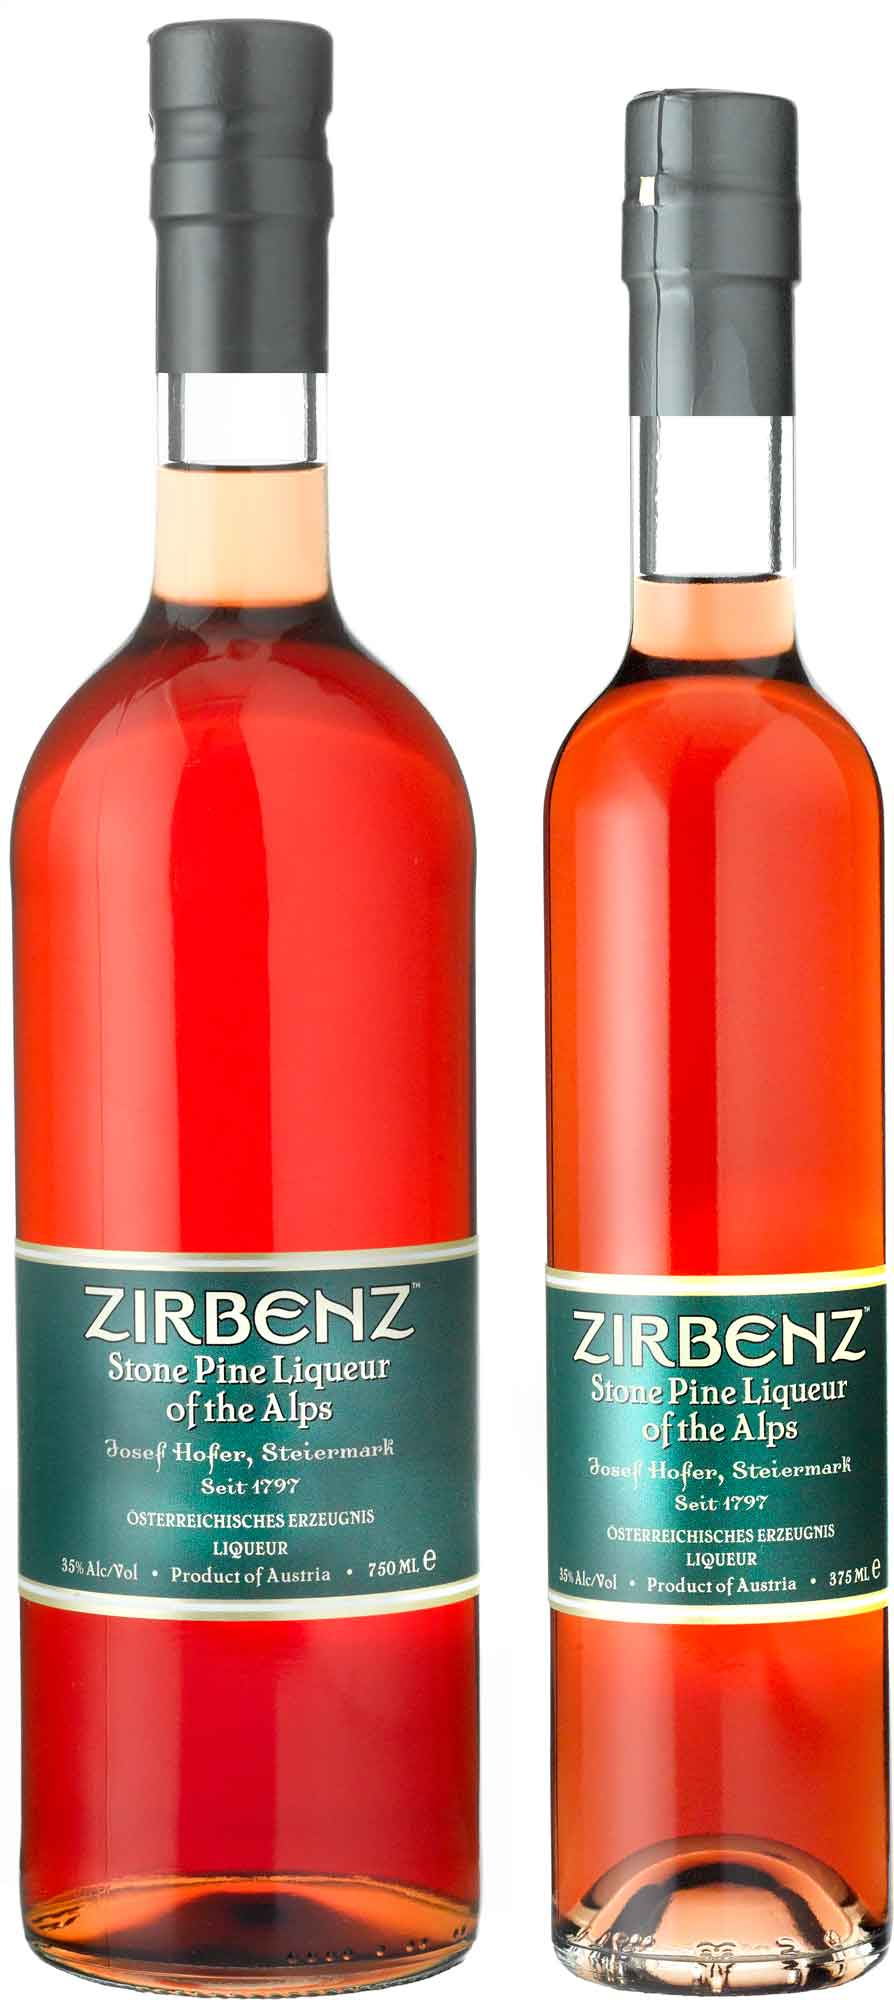 Zirbenz Stone Pine Liqueur of the Alps